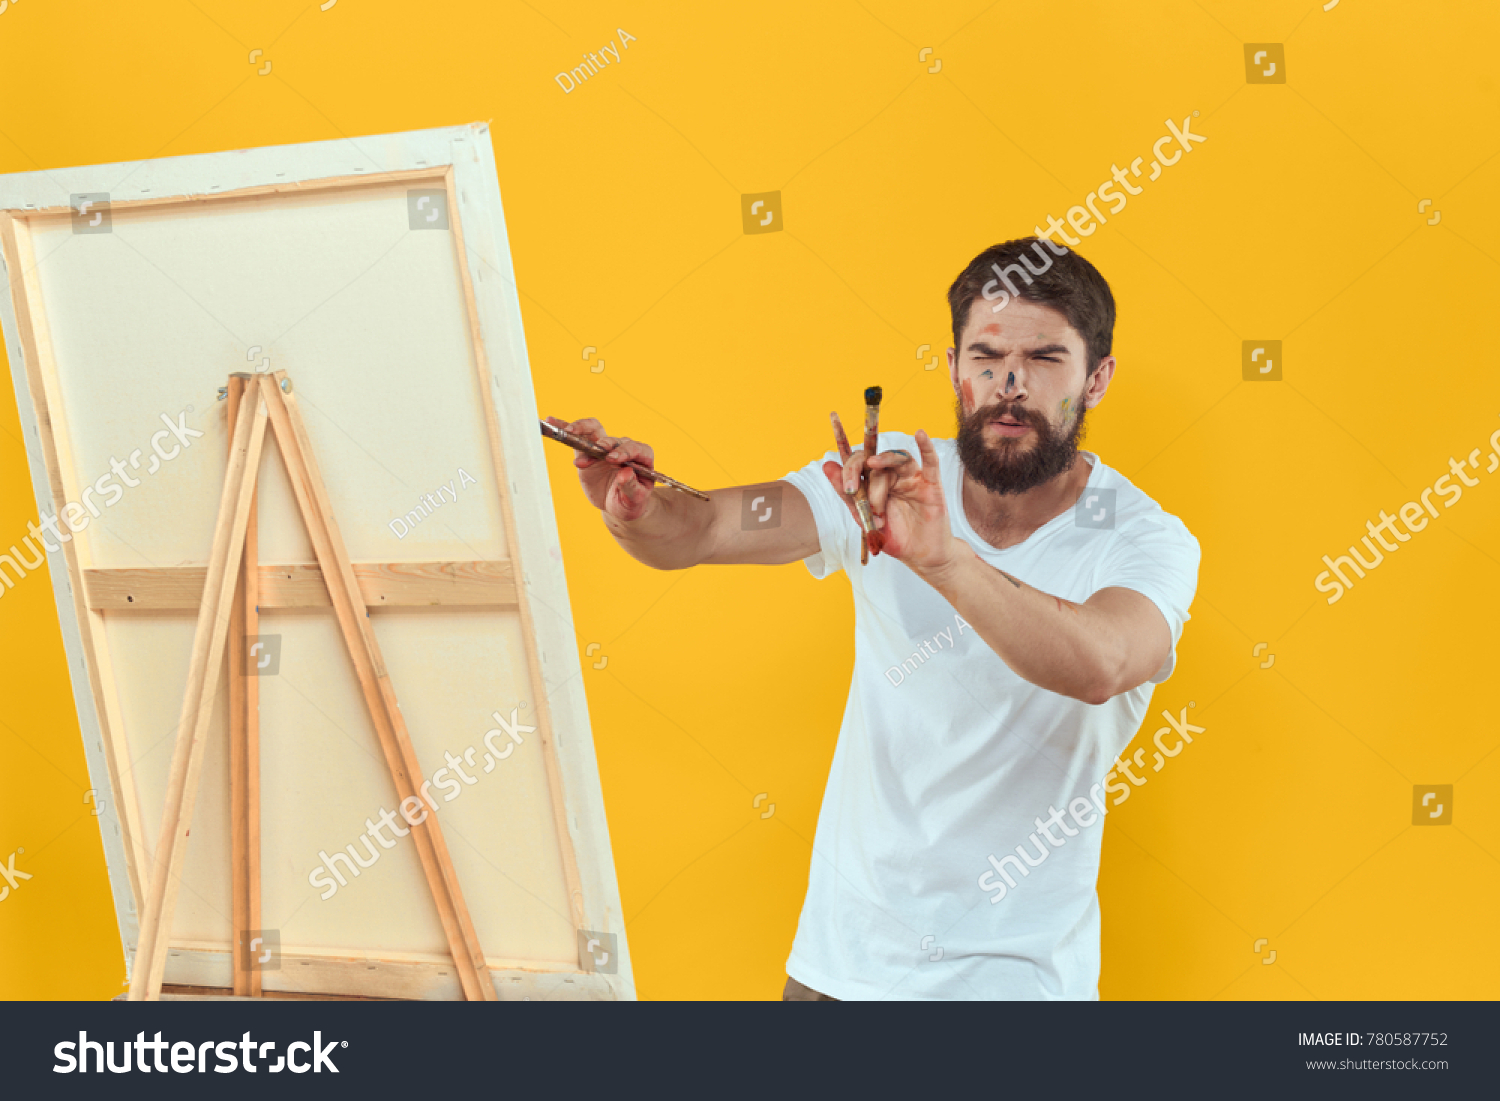 Artist Easel Drawing Art Stock Photo & Image (Royalty-Free ...